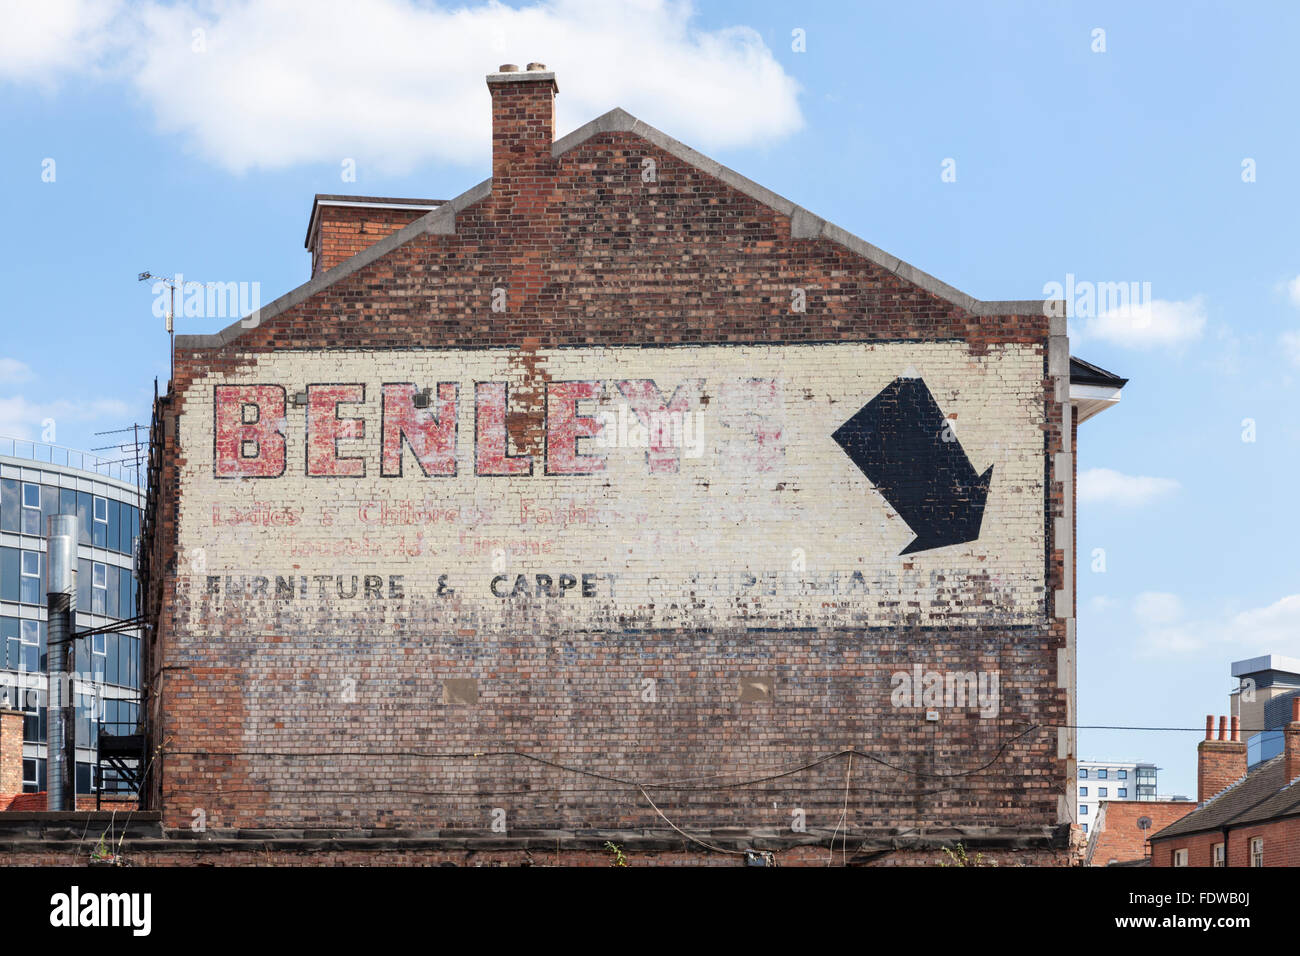 Advert Painted On The Side Of An Old Brick Building Nottingham England UK